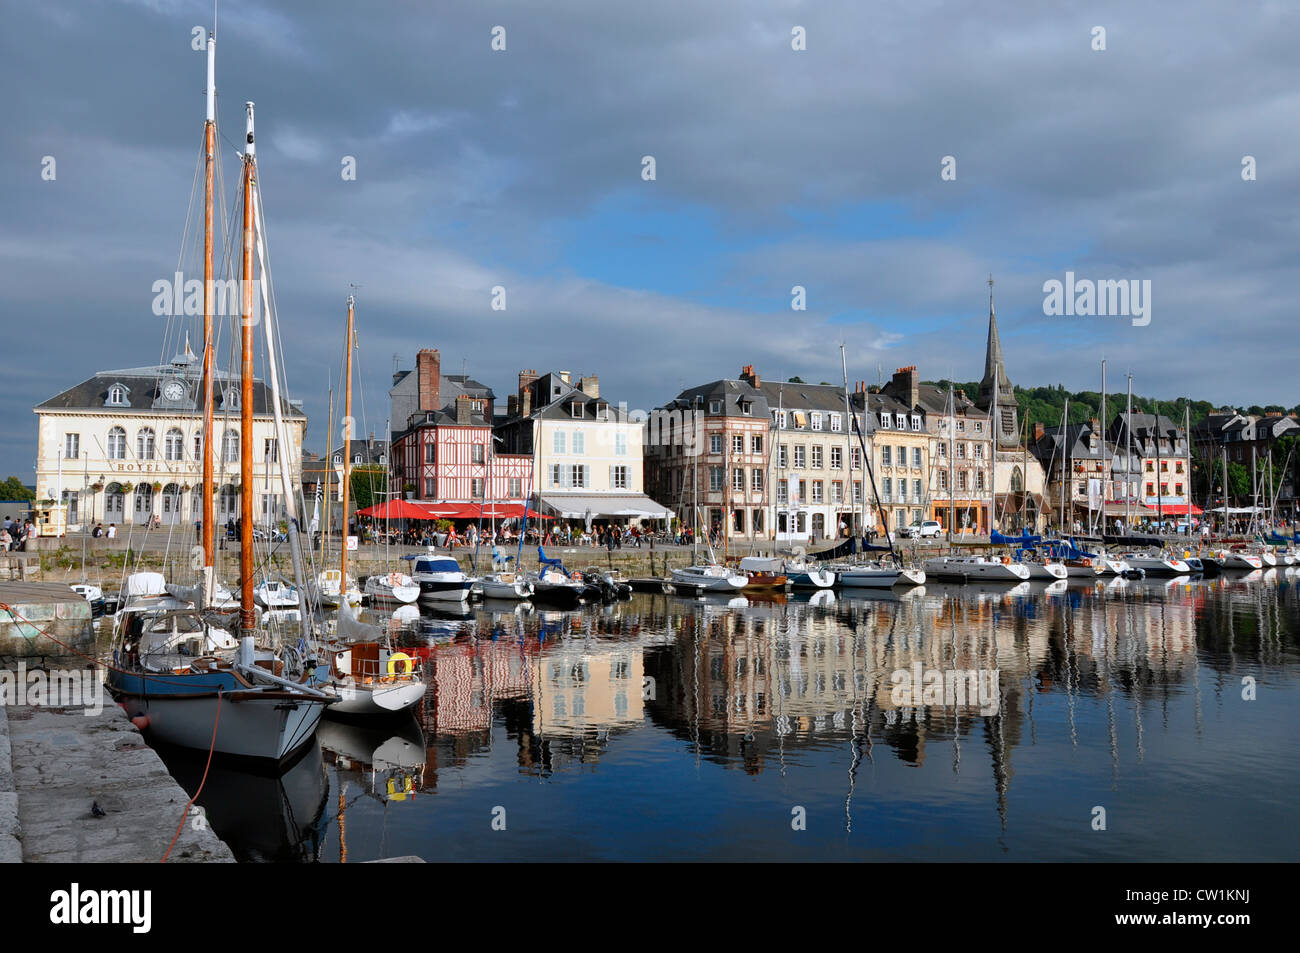 Late afternoon sunshine on picturesque Honfleur harbour, with a mirror image reflection in the still water of the - Stock Image